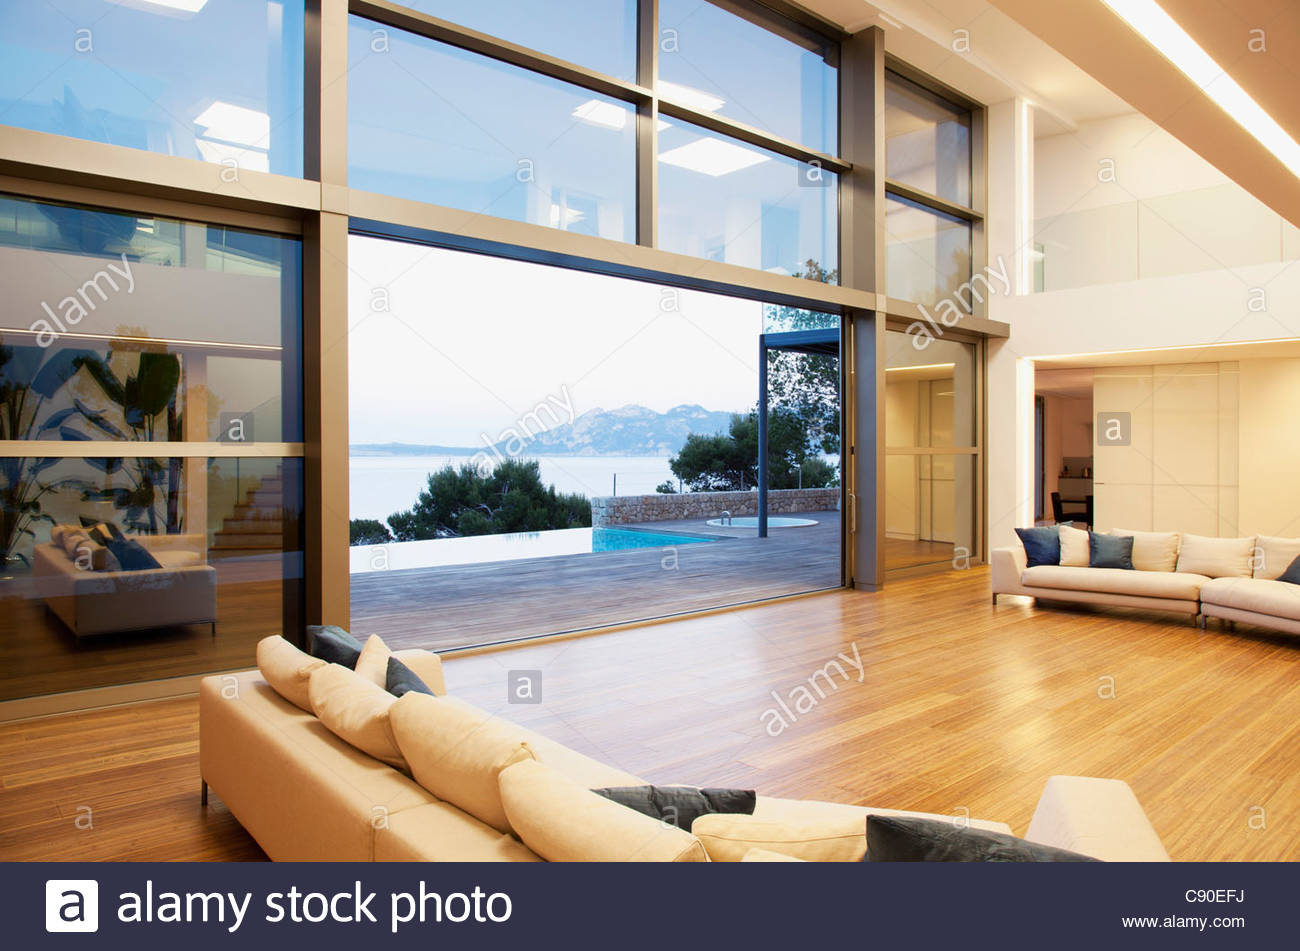 Sofas and sliding doors in open modern house - Stock Image